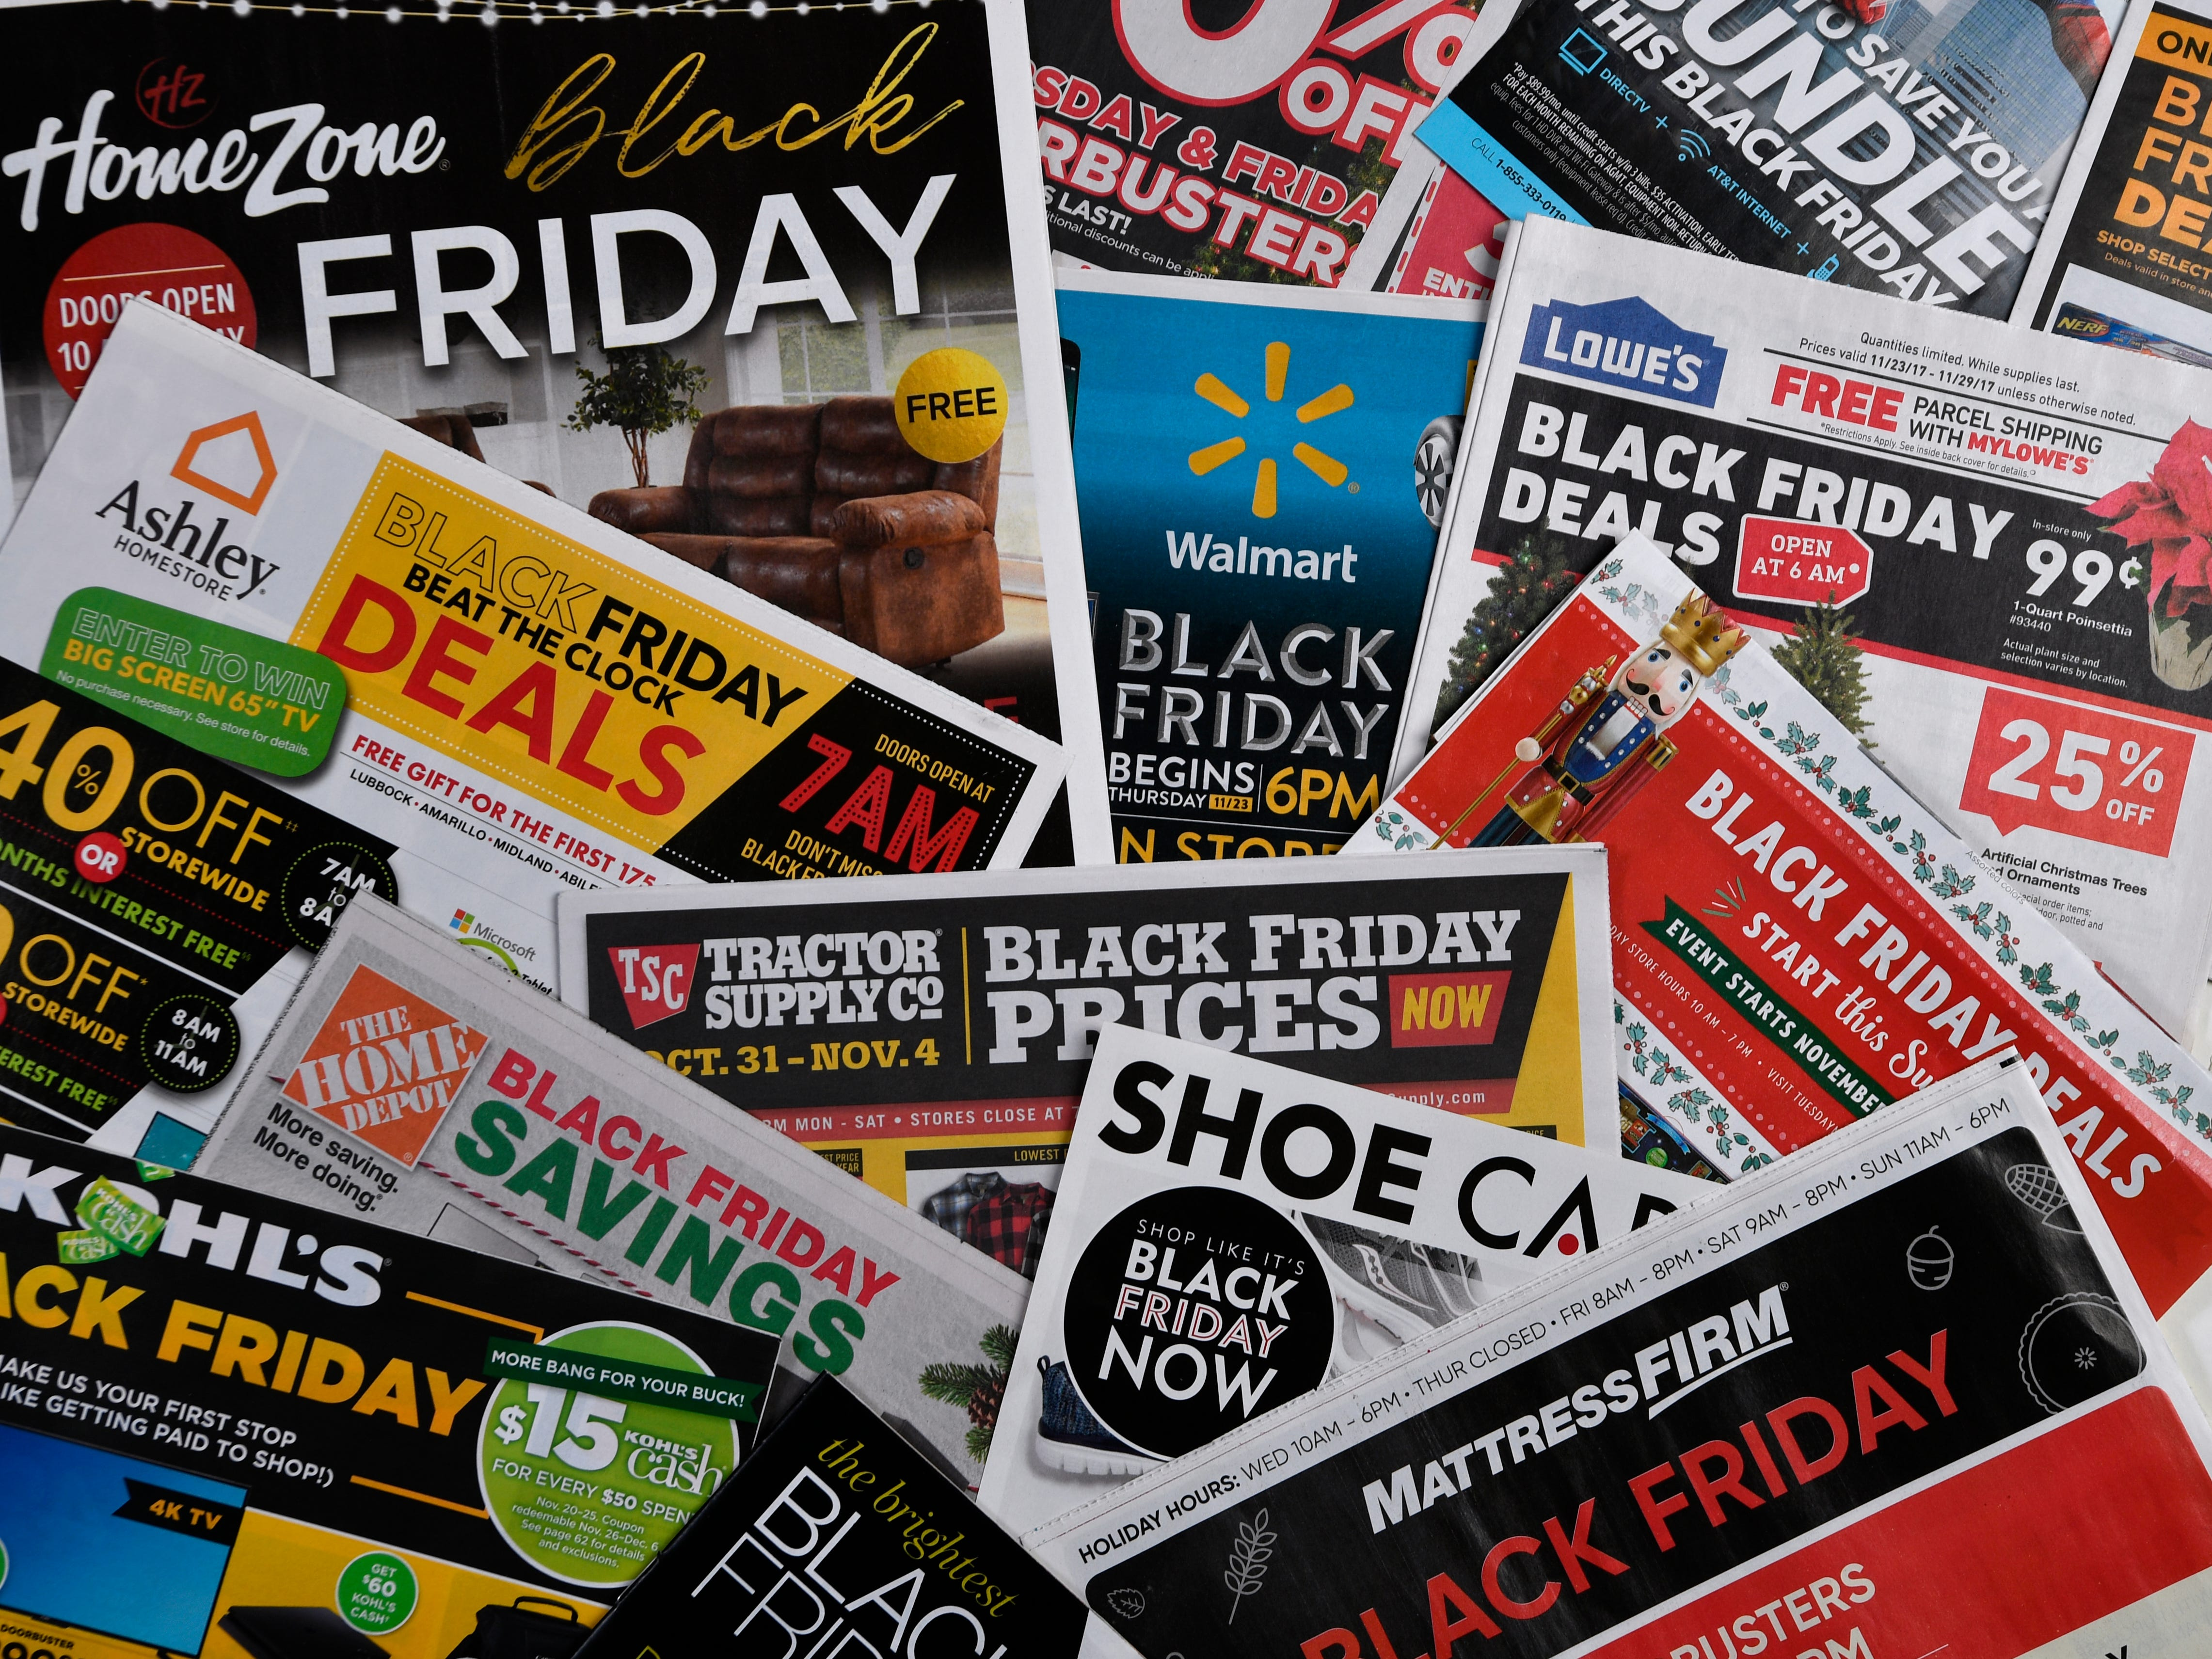 Black Friday deals often come earlier than the Friday after Thanksgiving.